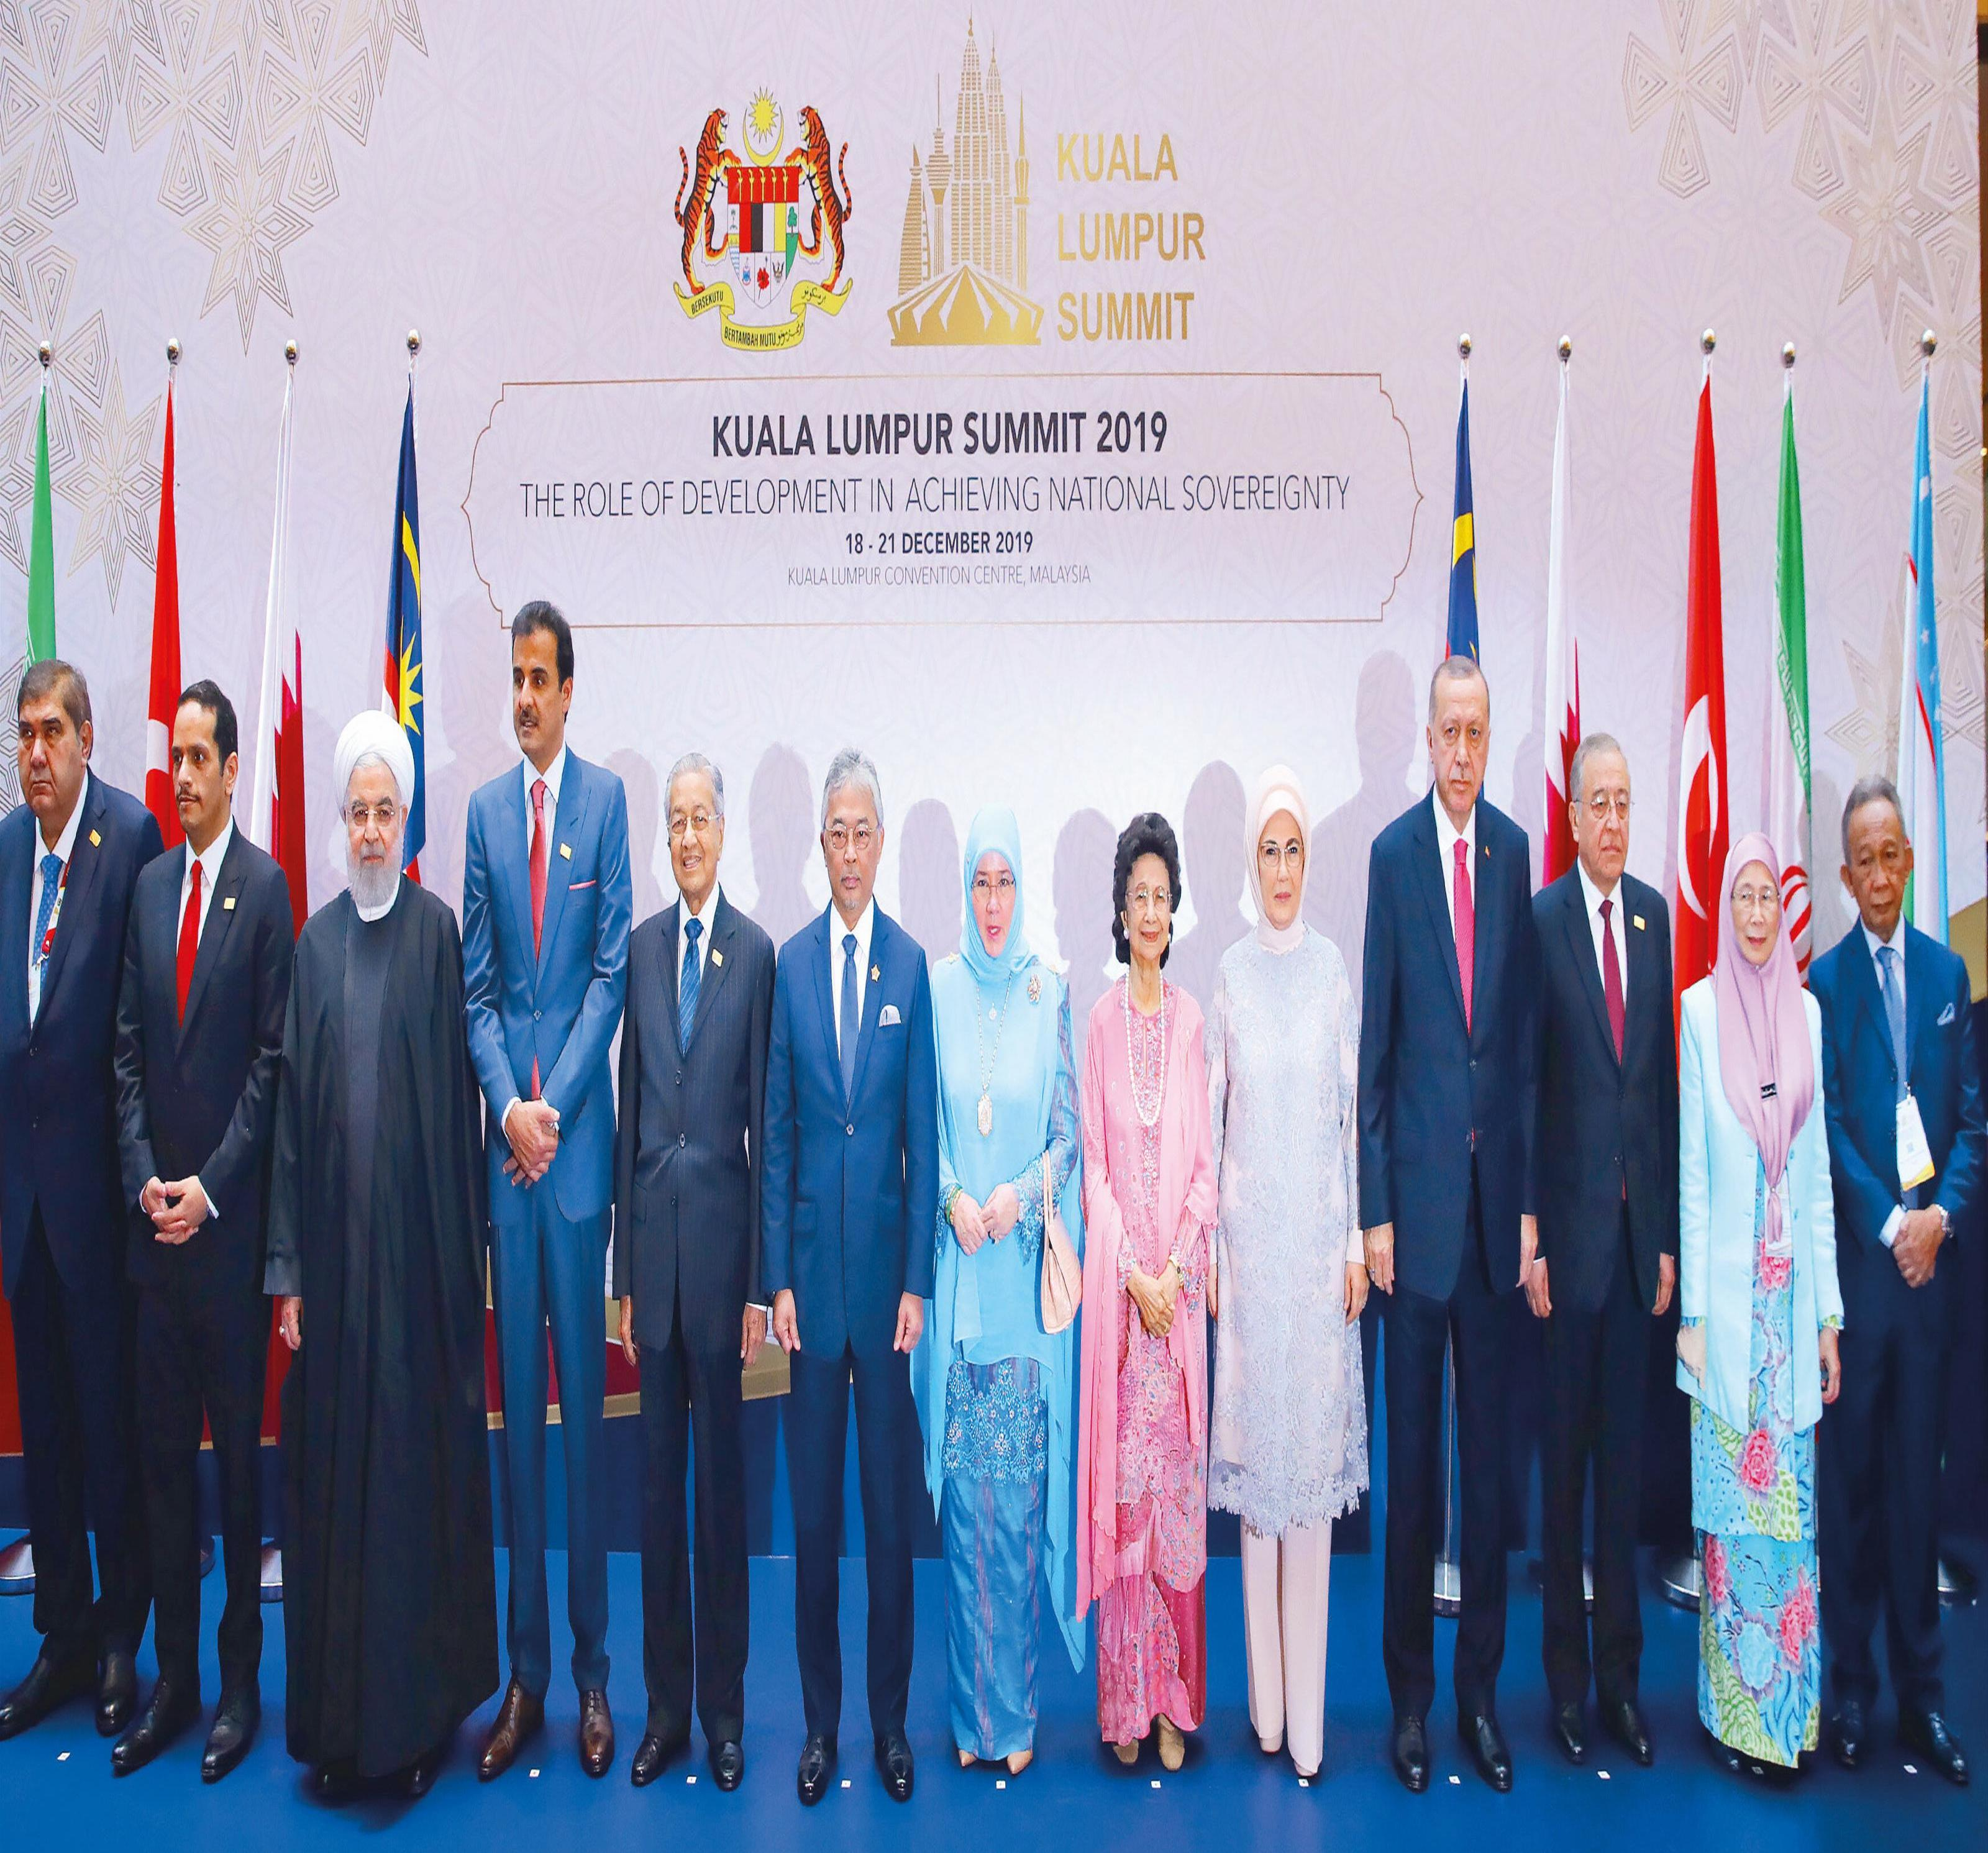 Kuala Lumpur summit: The transition from oil to technology